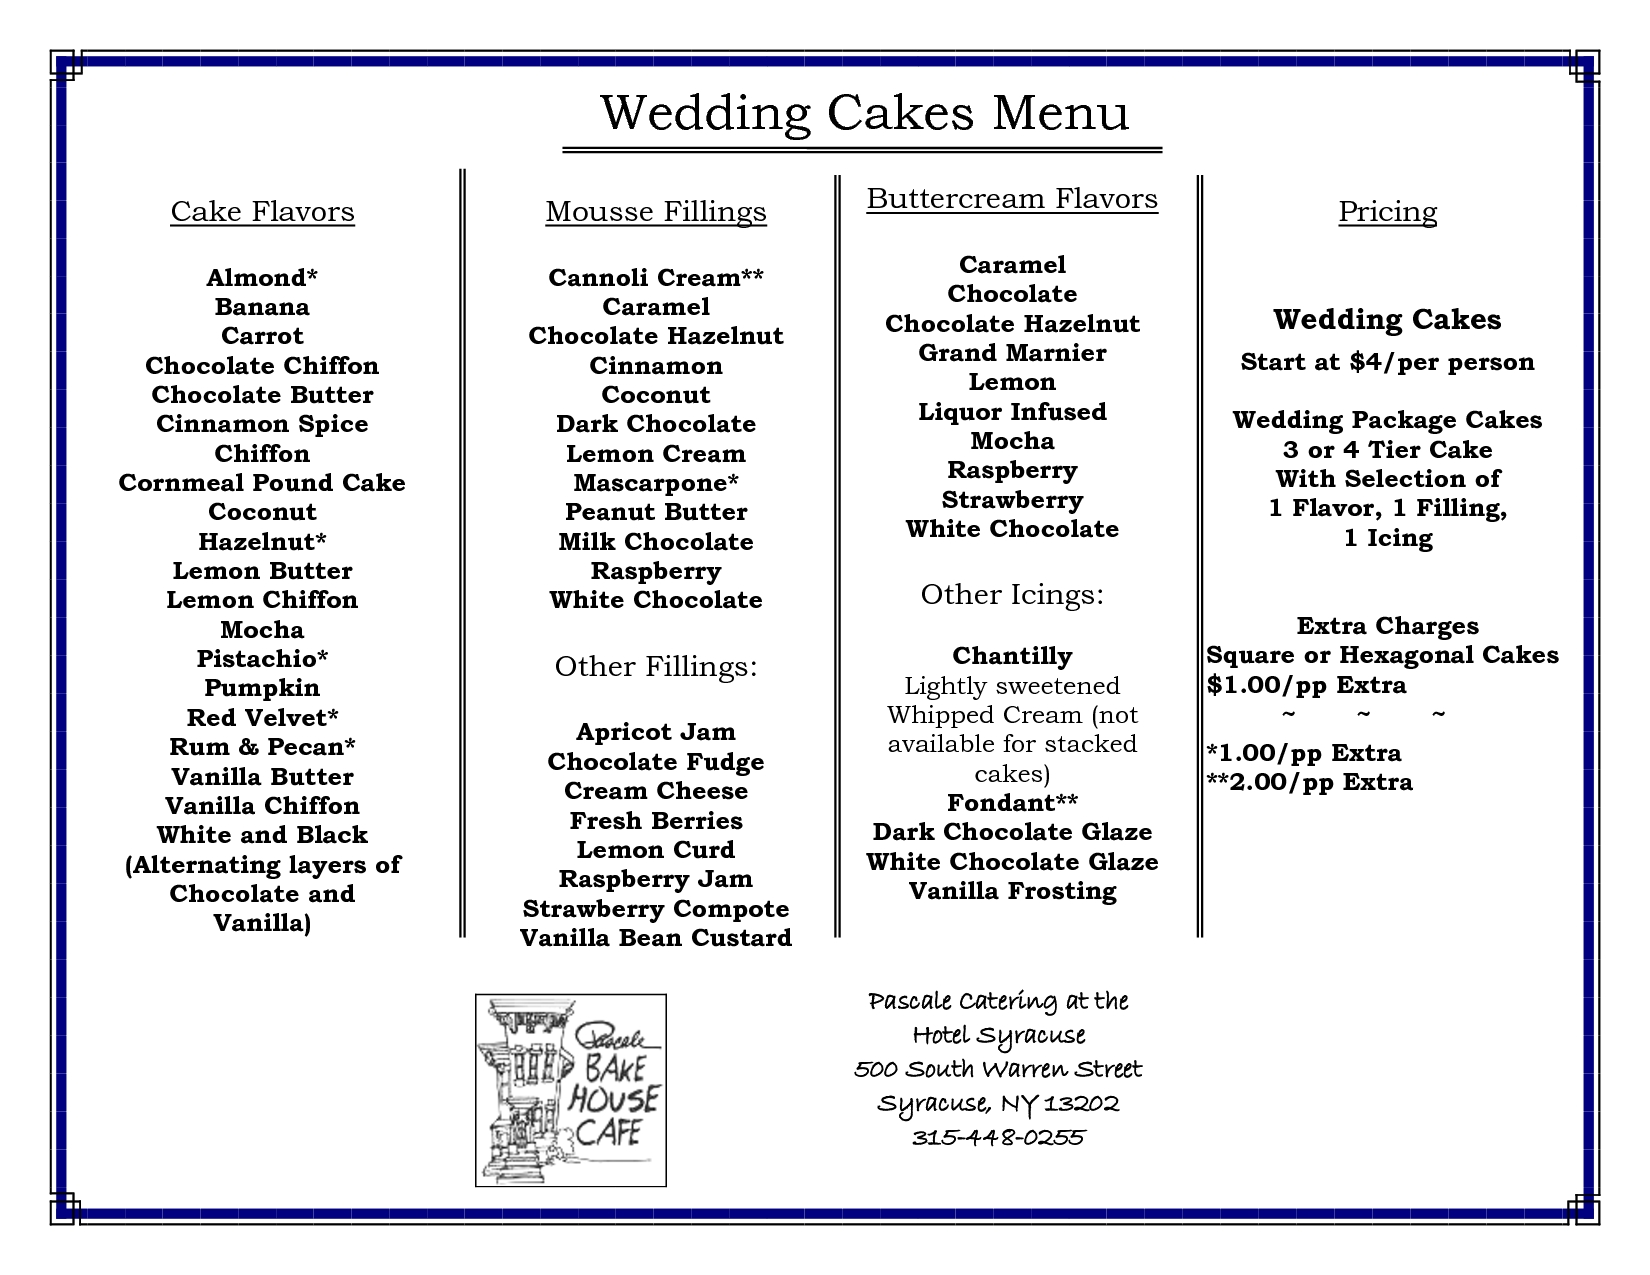 10 Cute Cake Flavors And Fillings Ideas good wedding cake flavor combinations 1 d h pinterest 2020